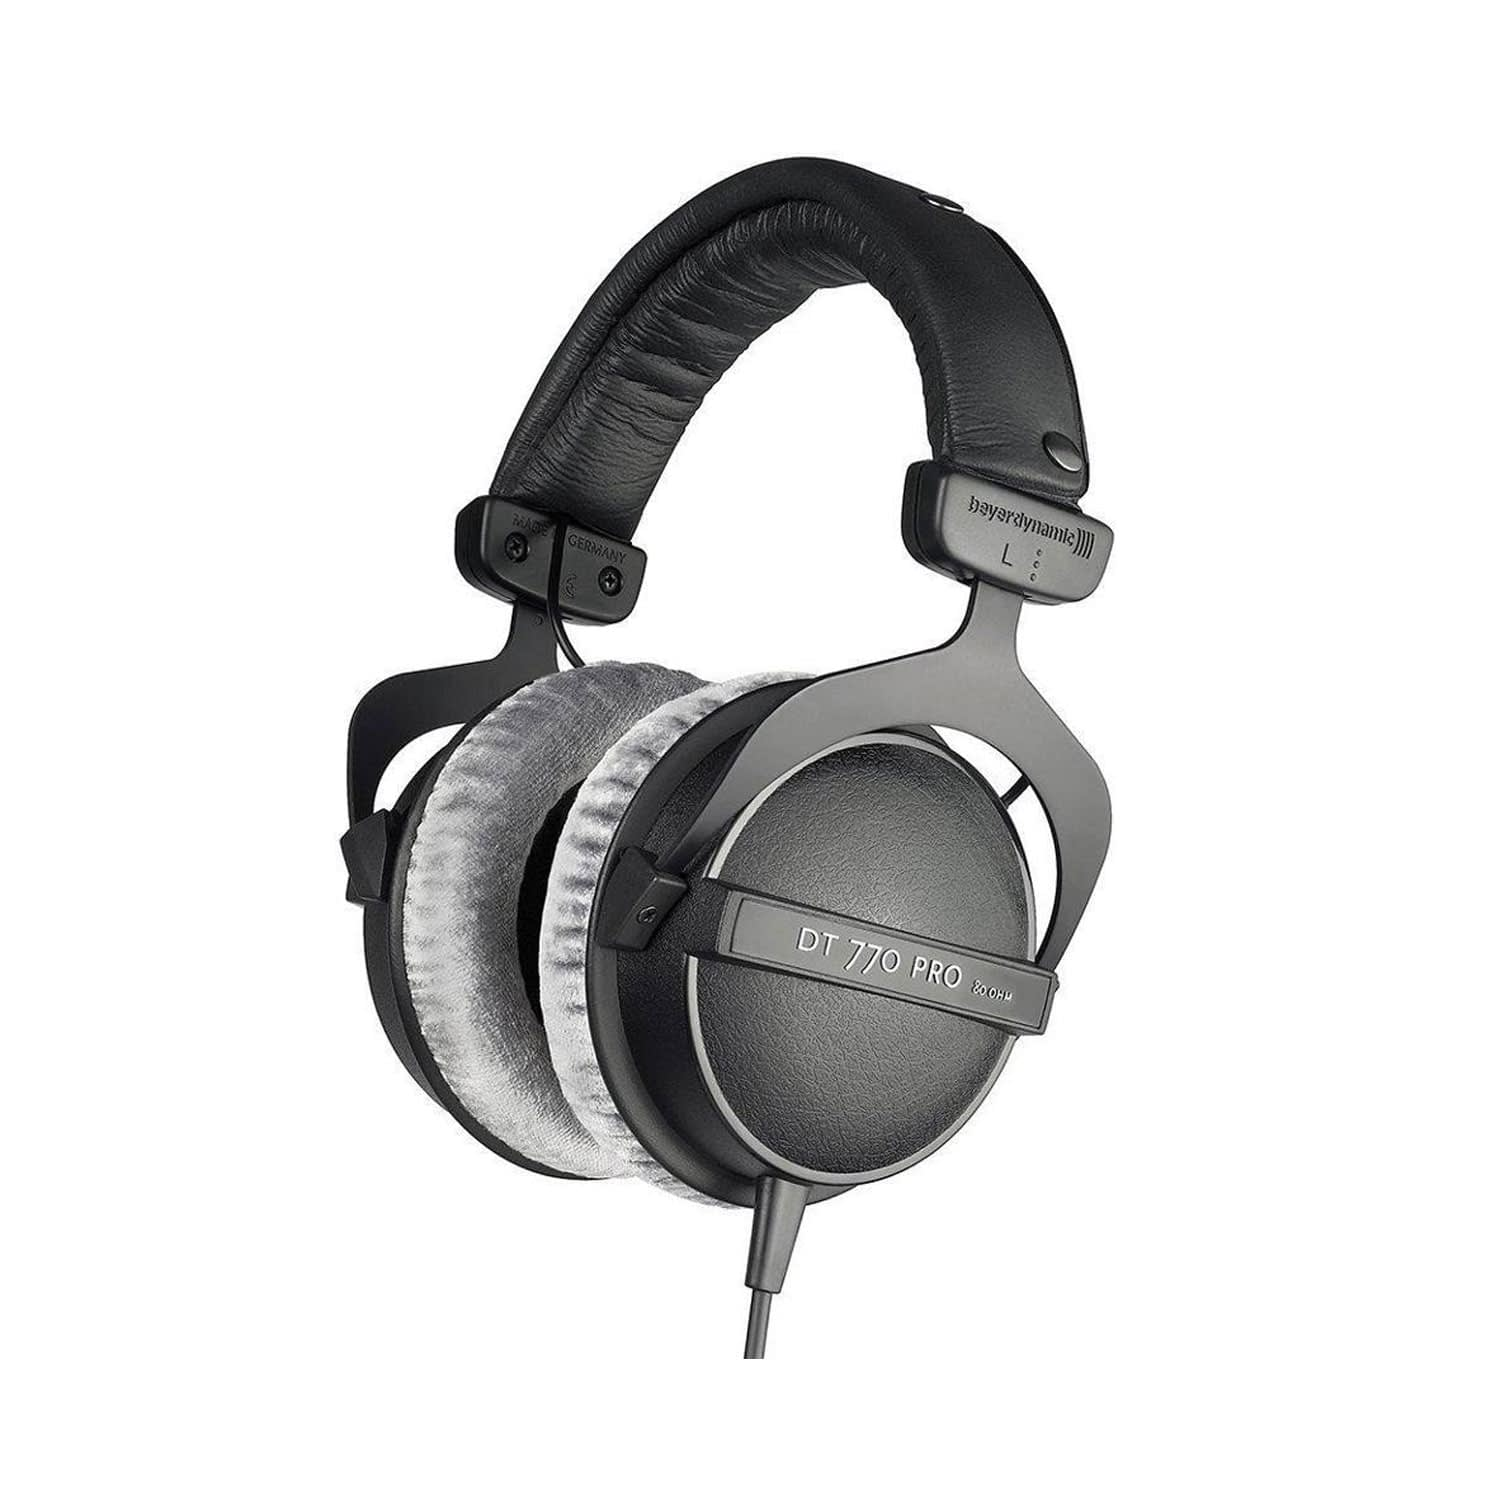 Beyerdynamic - DT 770 Pro 80 ohm headphones